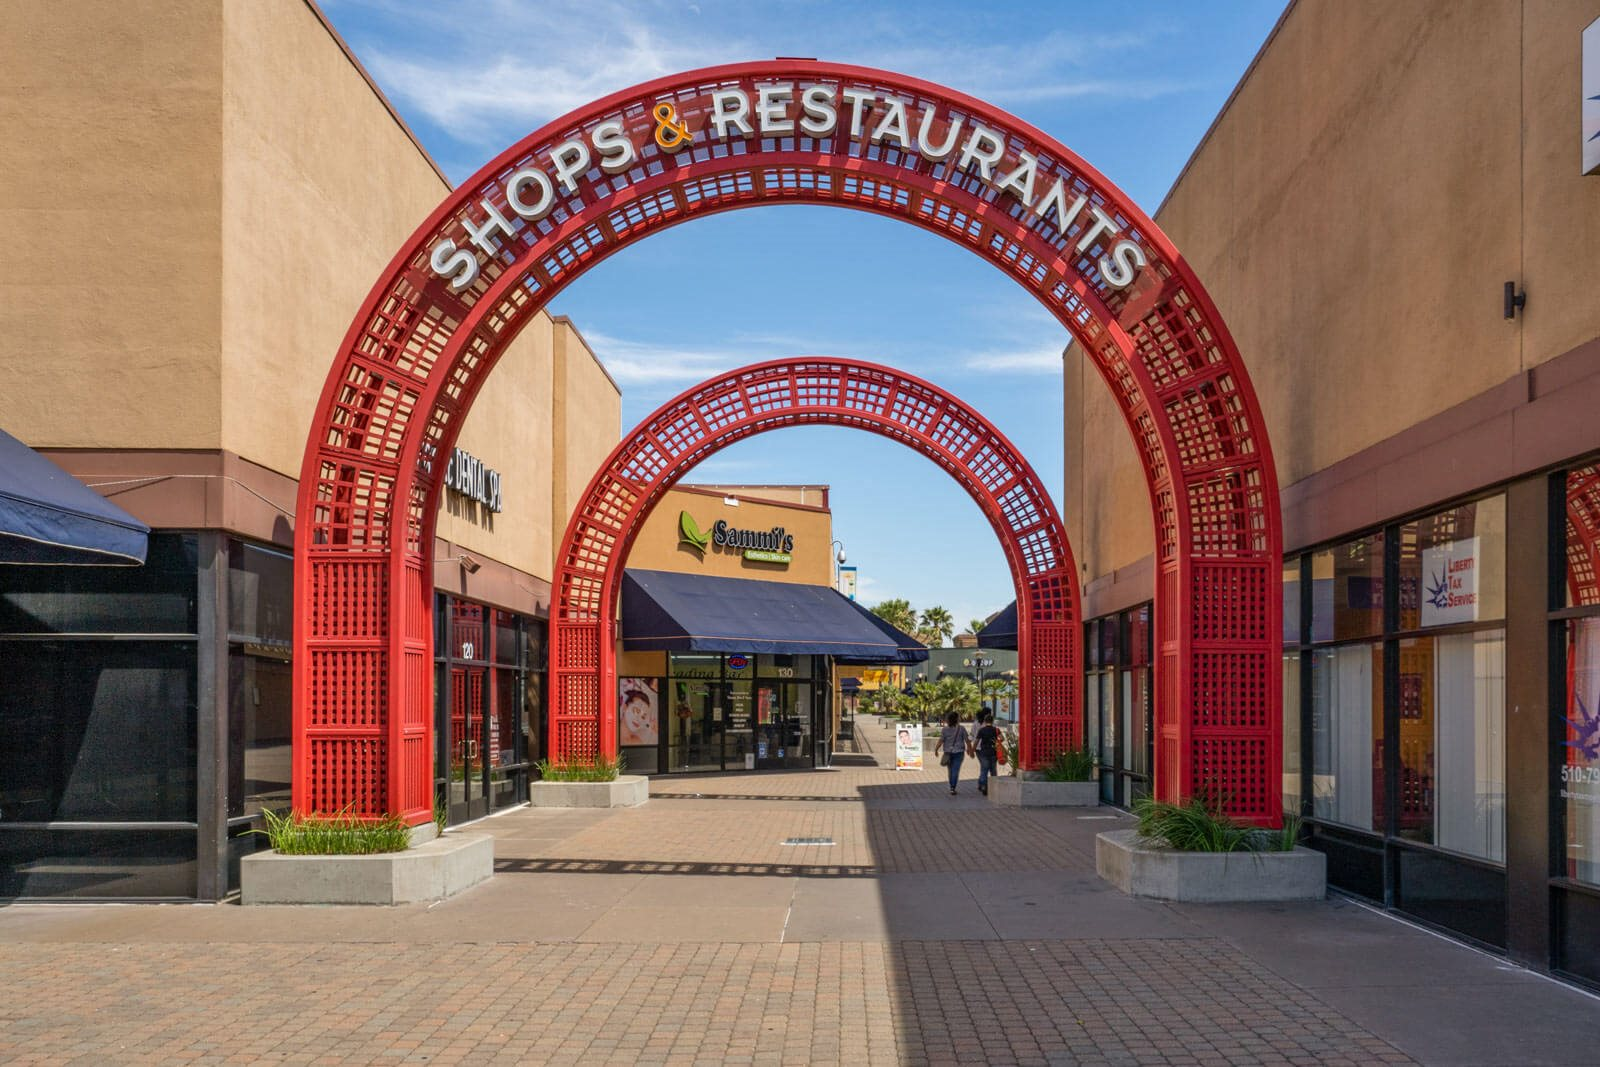 Dining and Shopping at Gateway Plaza near The Estates at Park Place, 3400 Stevenson Boulevard, CA